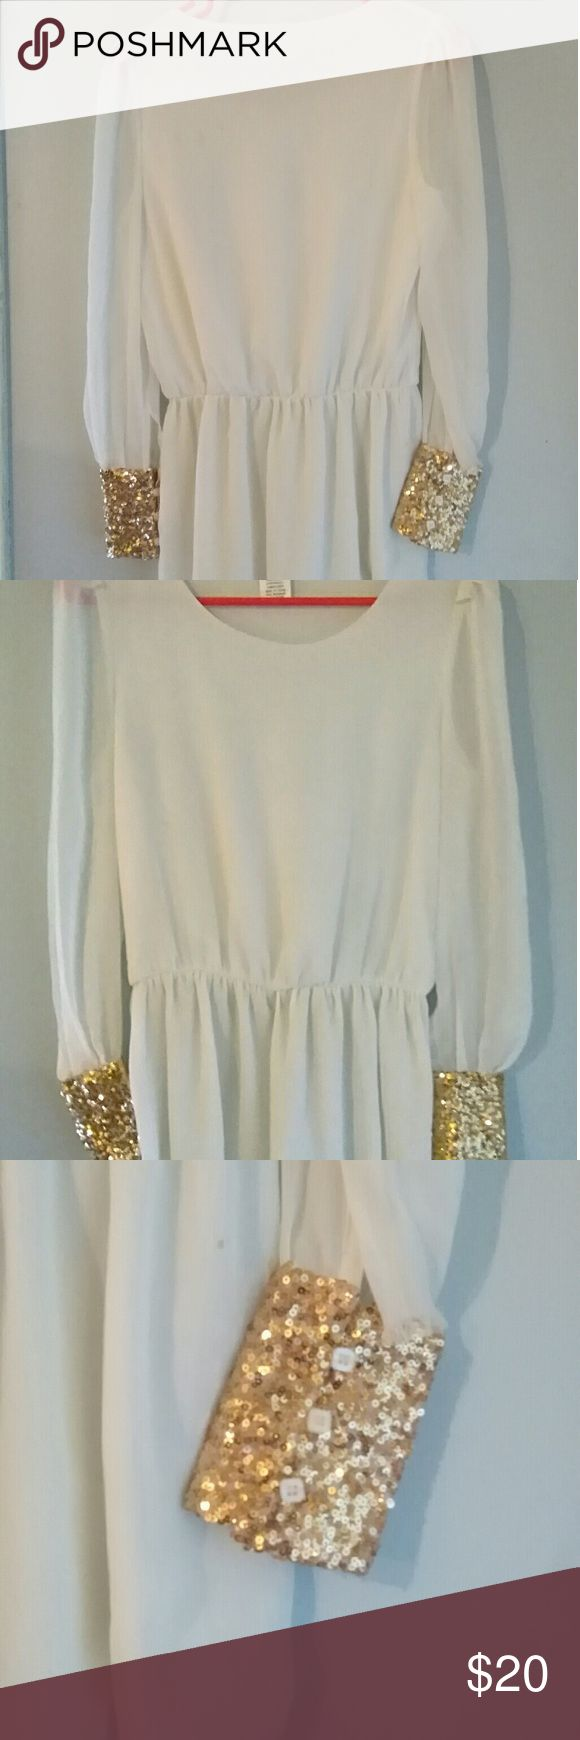 Charming Charlie Goddess White Tunic Dress Charming Charlie Goddess White Tunic Dress with Gold Sequined Cuffs that add a twist on traditional Tunic Dress.  Beautiful Dress. Worn only once. Size Small Charming Charlie Dresses